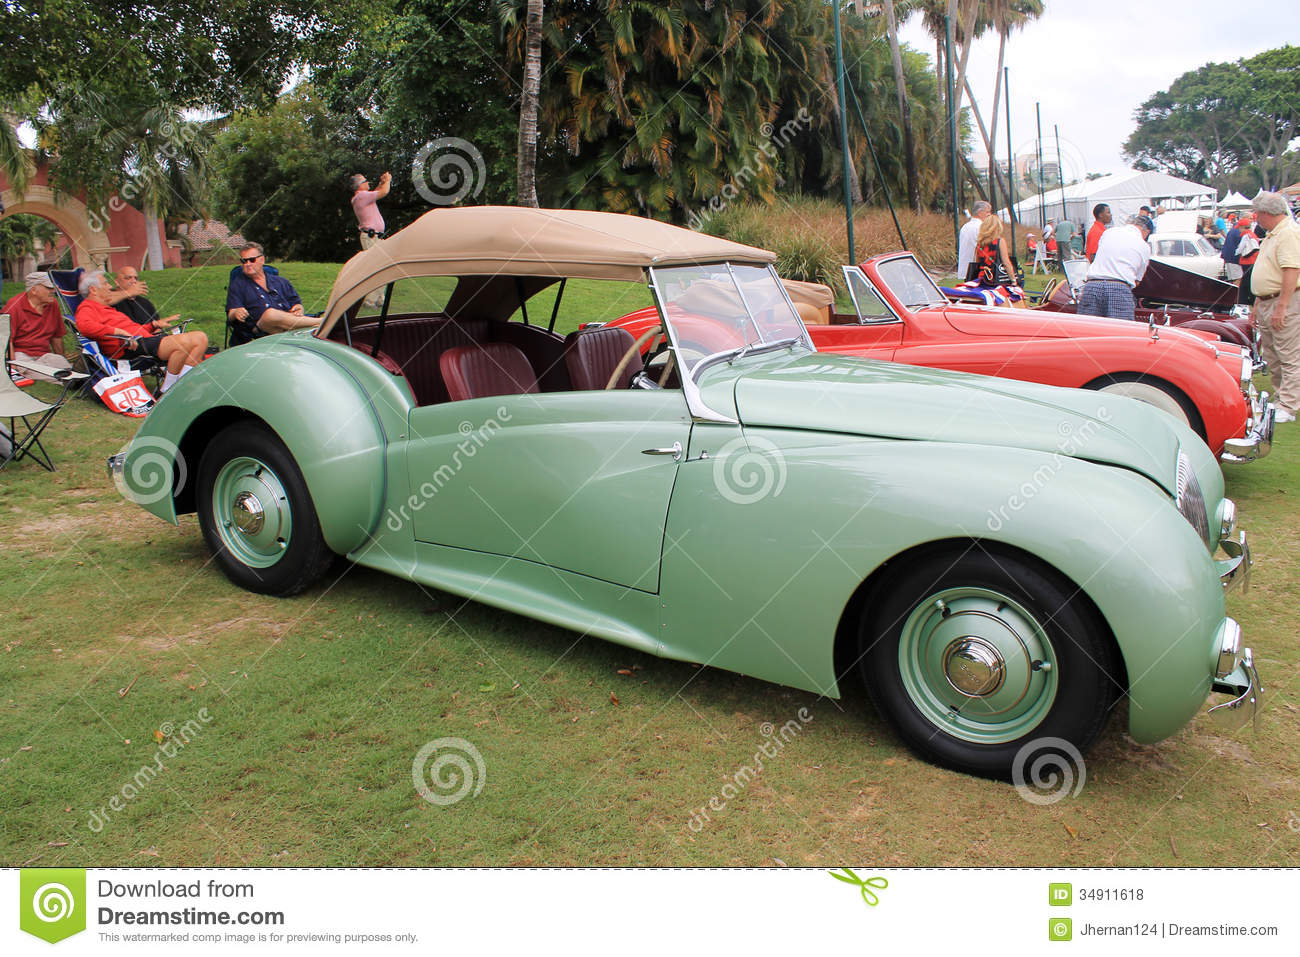 Old healy convertible editorial stock photo. Image of fender ...